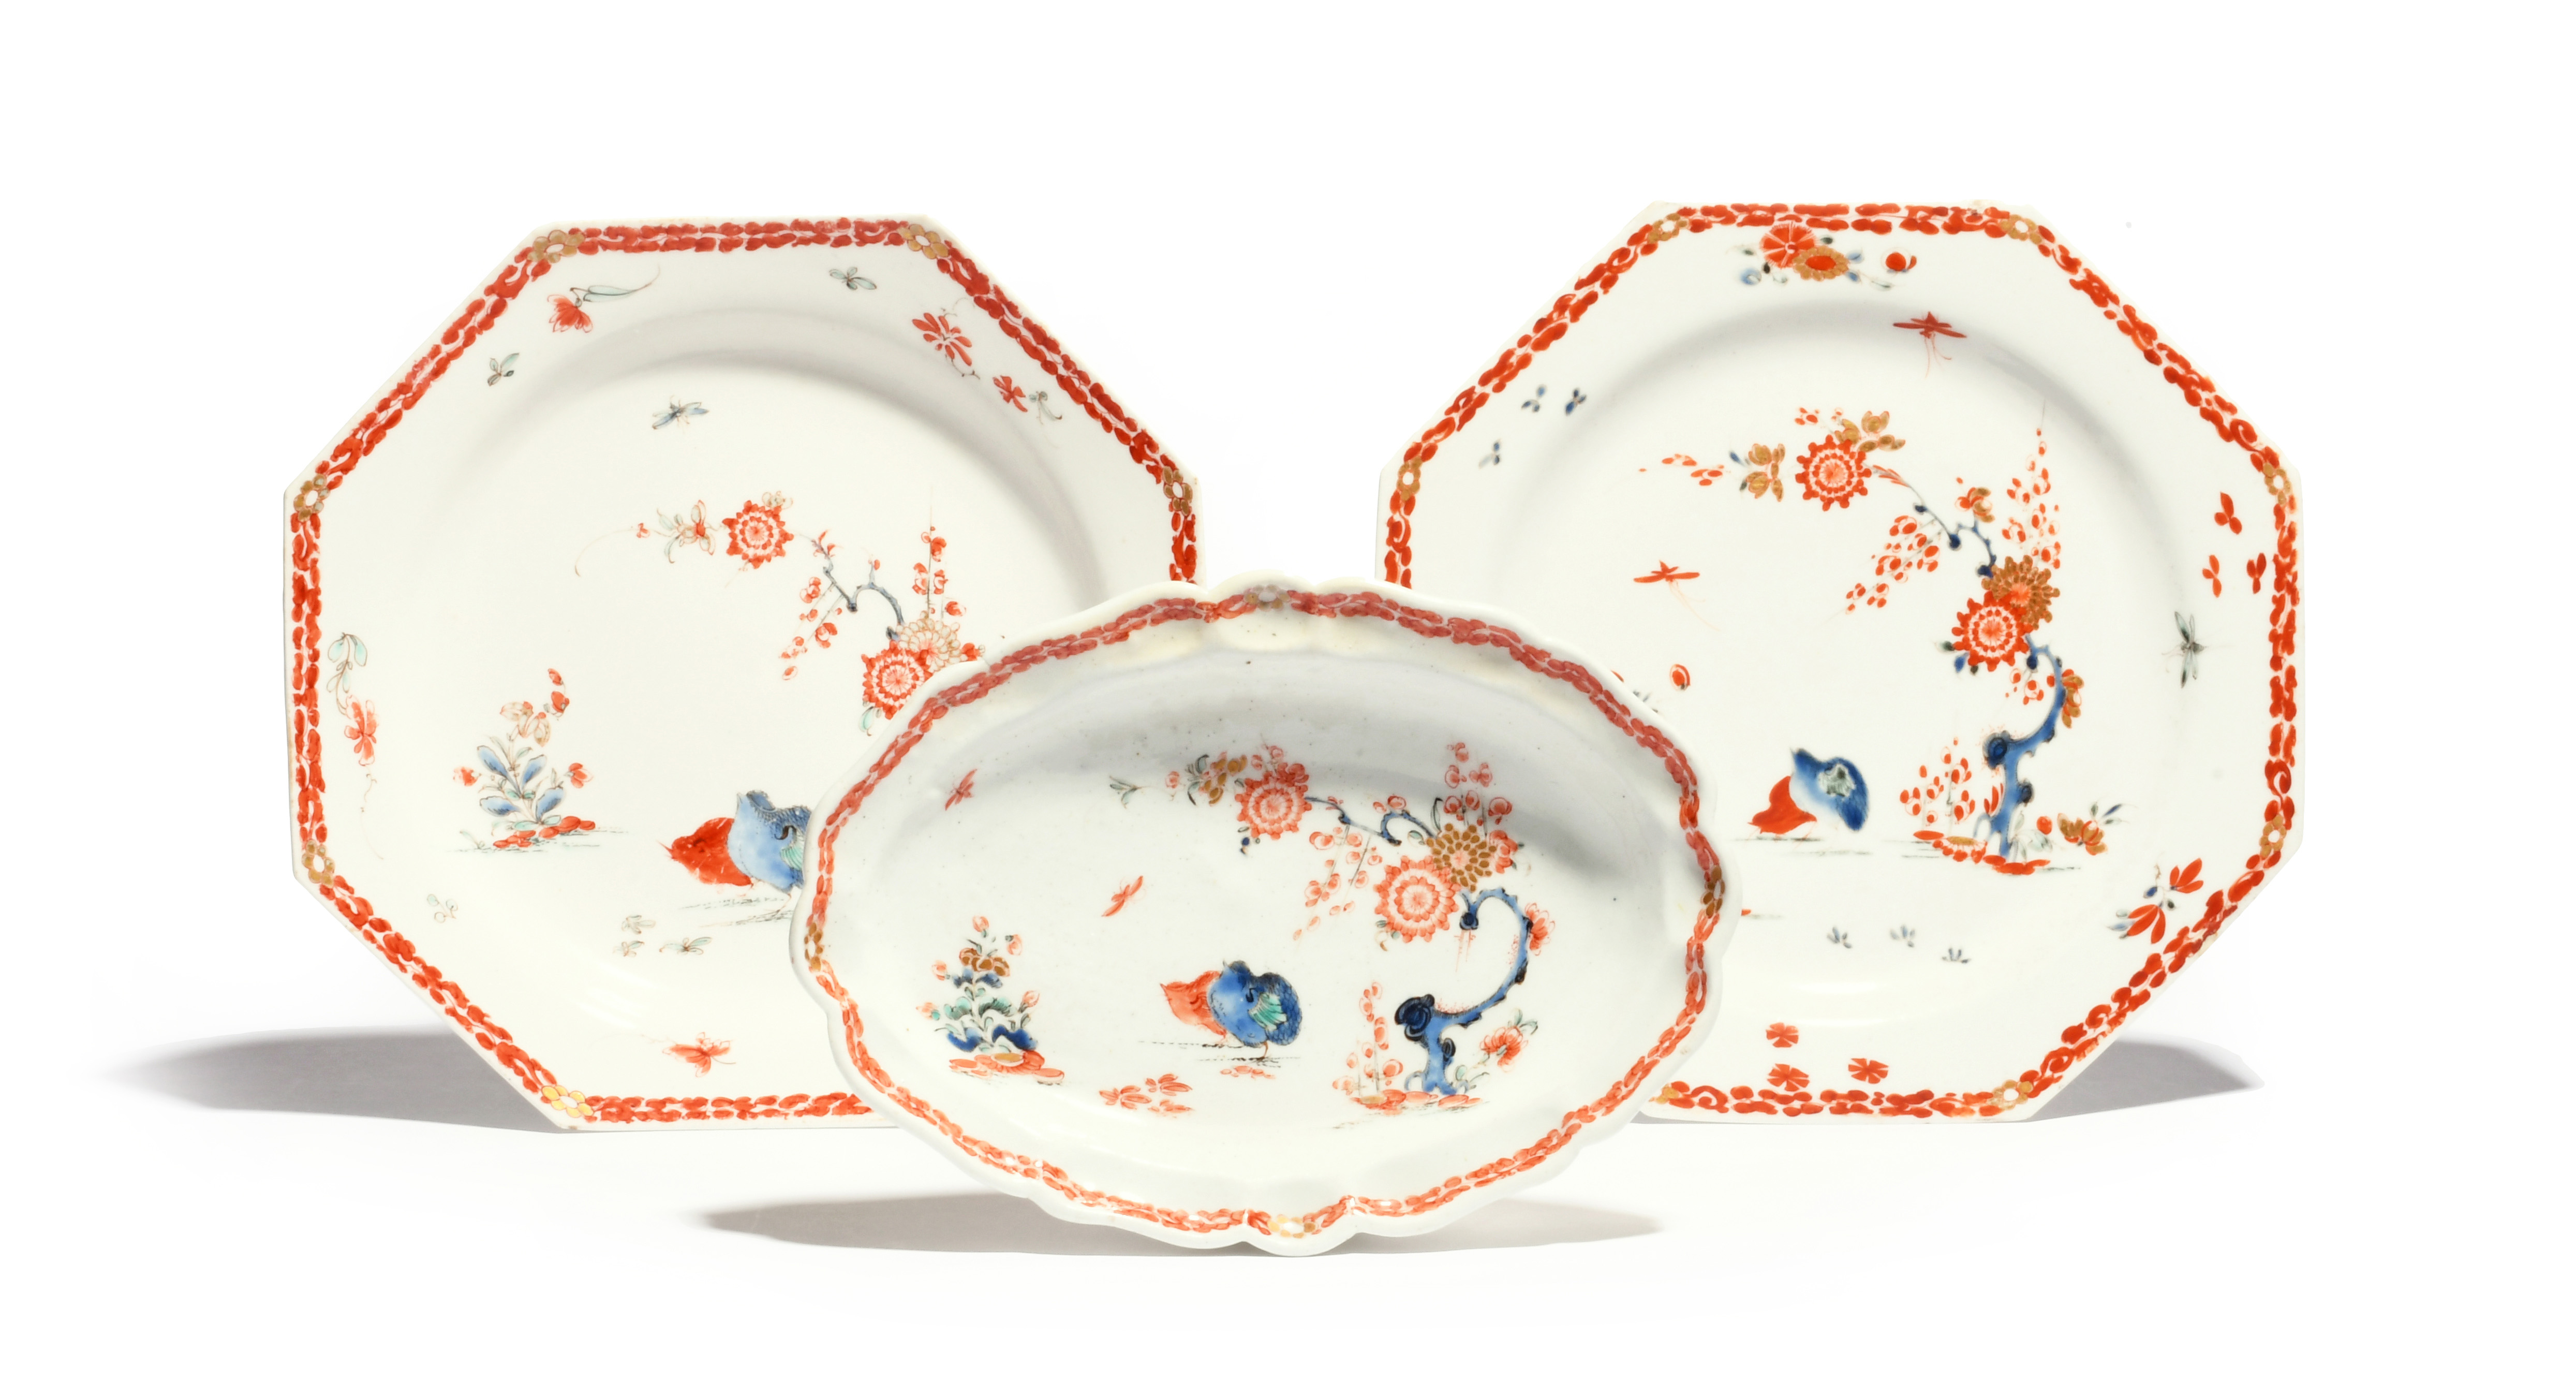 A pair of Bow octagonal plates and a small oval dish c.1755, all decorated in Kakiemon enamels